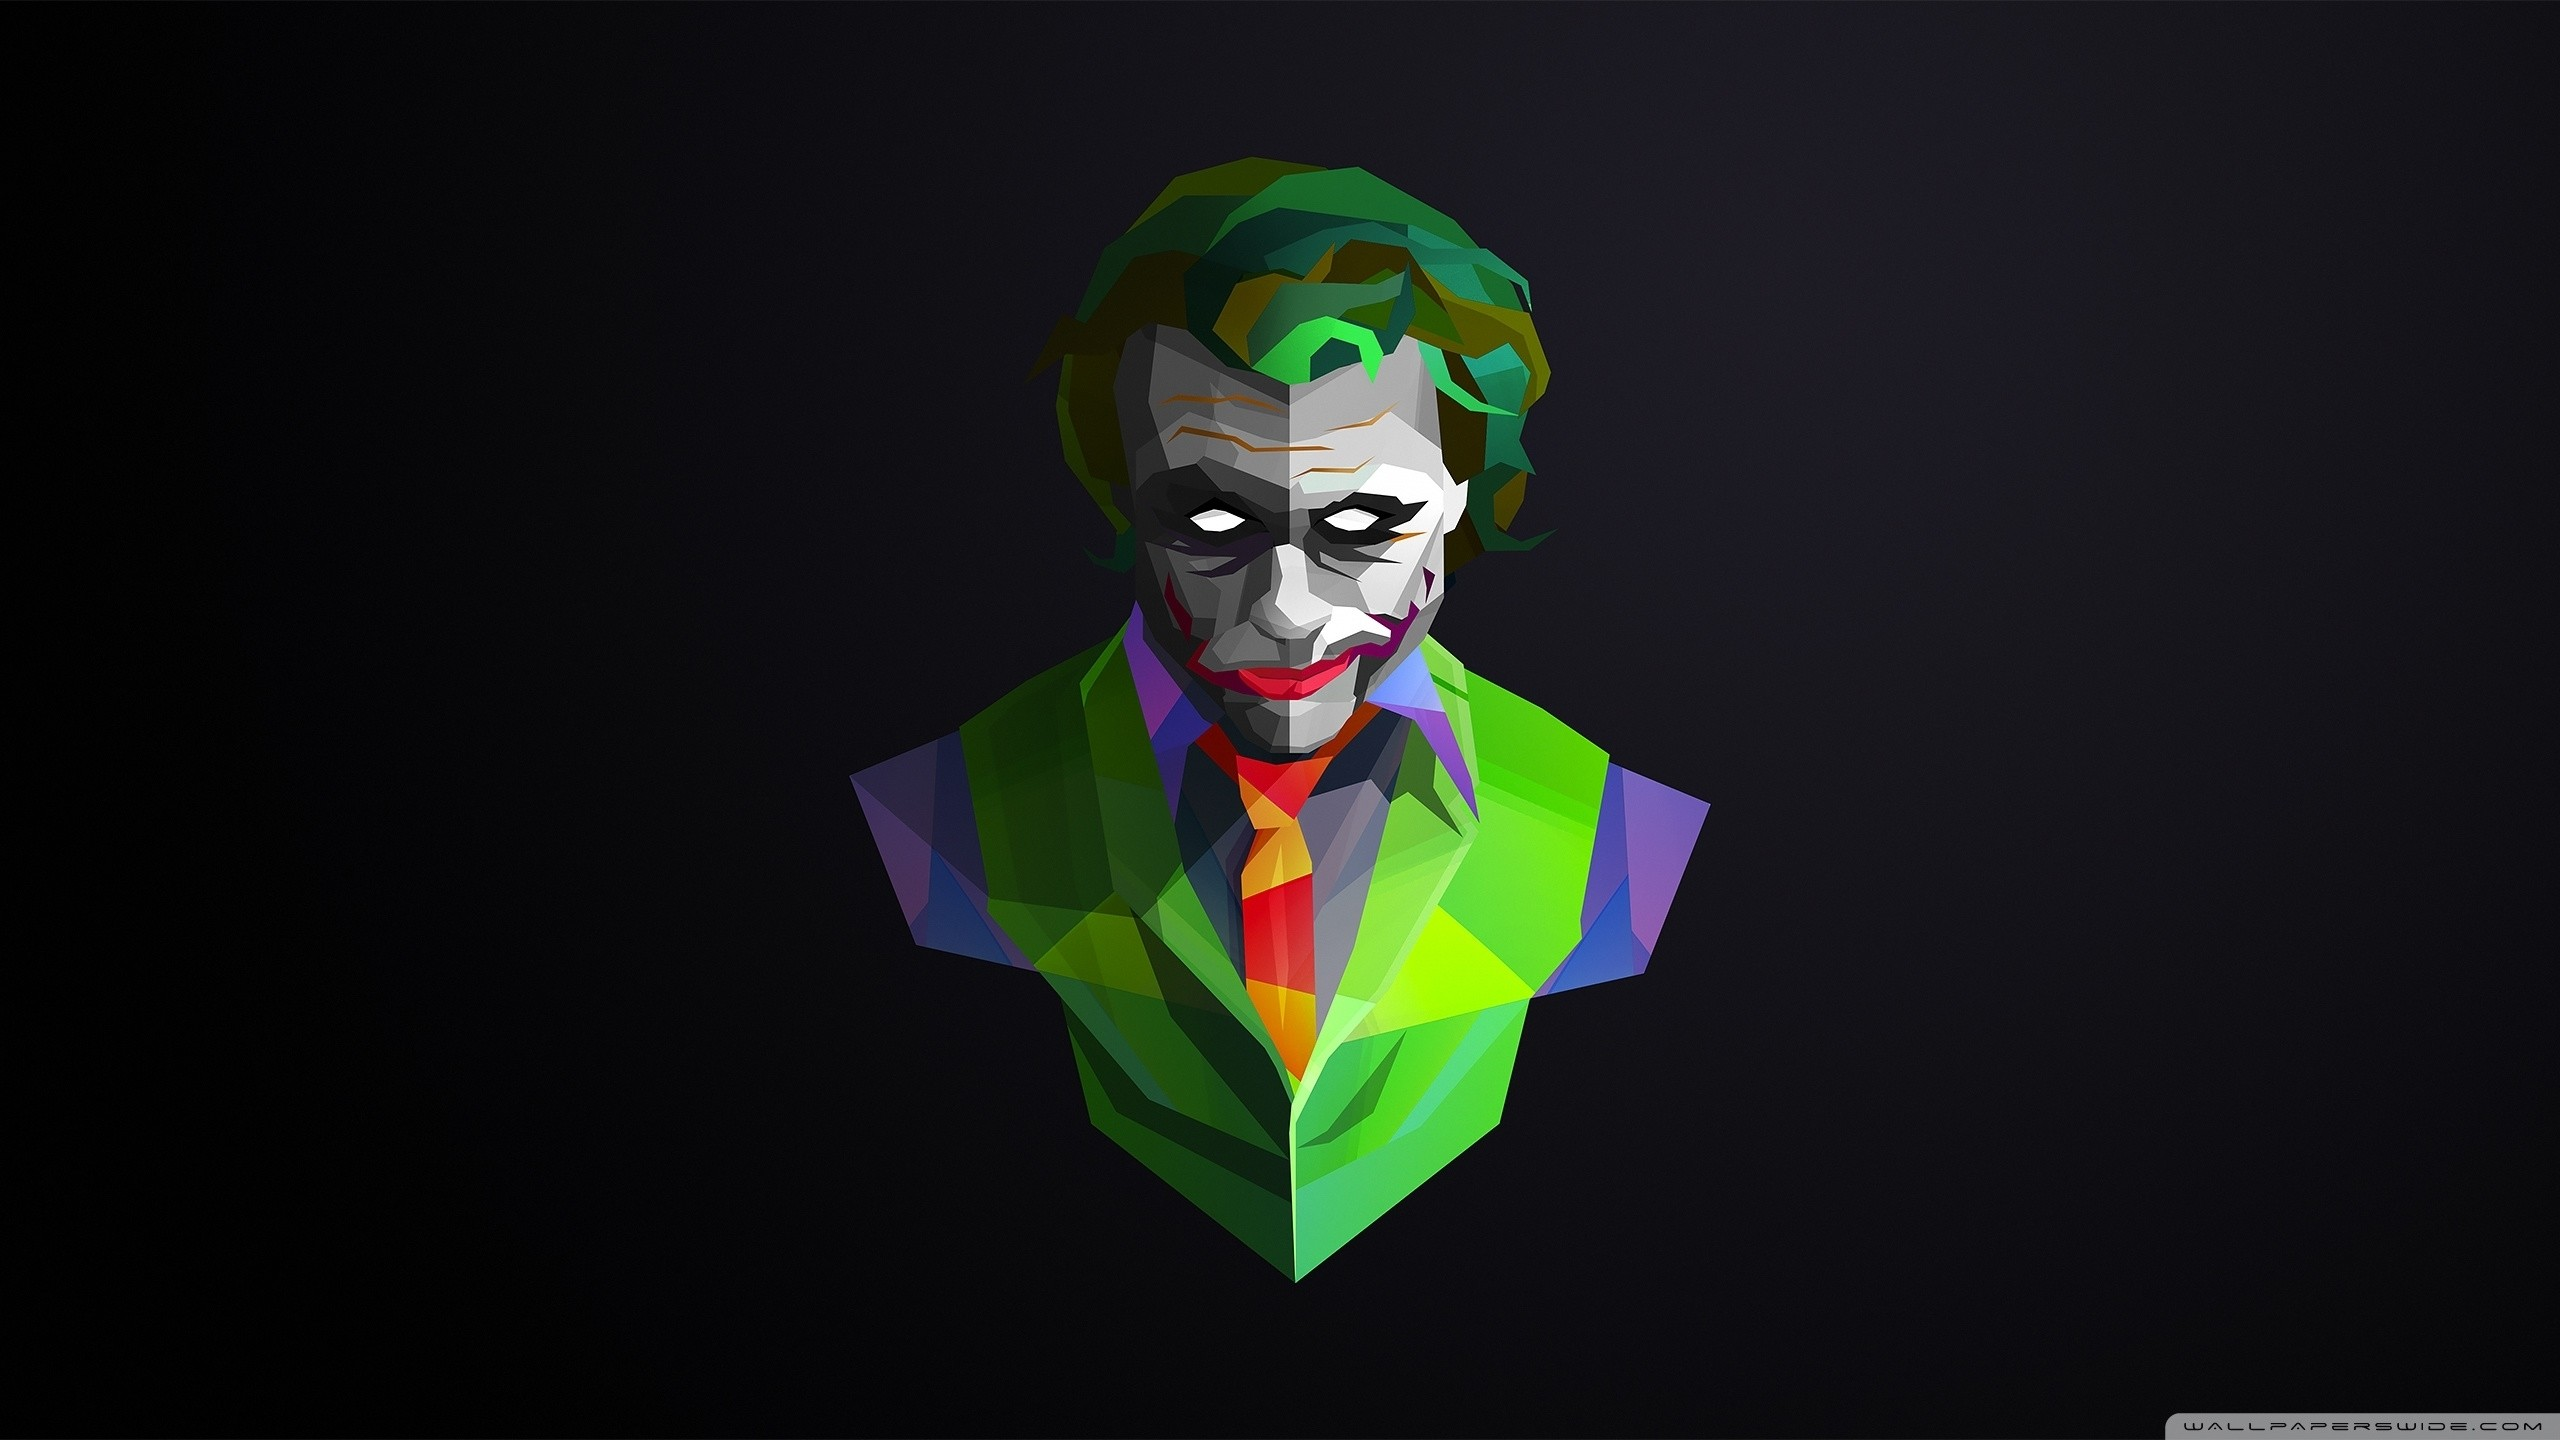 Res: 2560x1440, Title : wallpaperswide ❤ joker hd wallpapers for 4k ultra hd tv ☆ wide.  Dimension : 2560 x 1440. File Type : JPG/JPEG